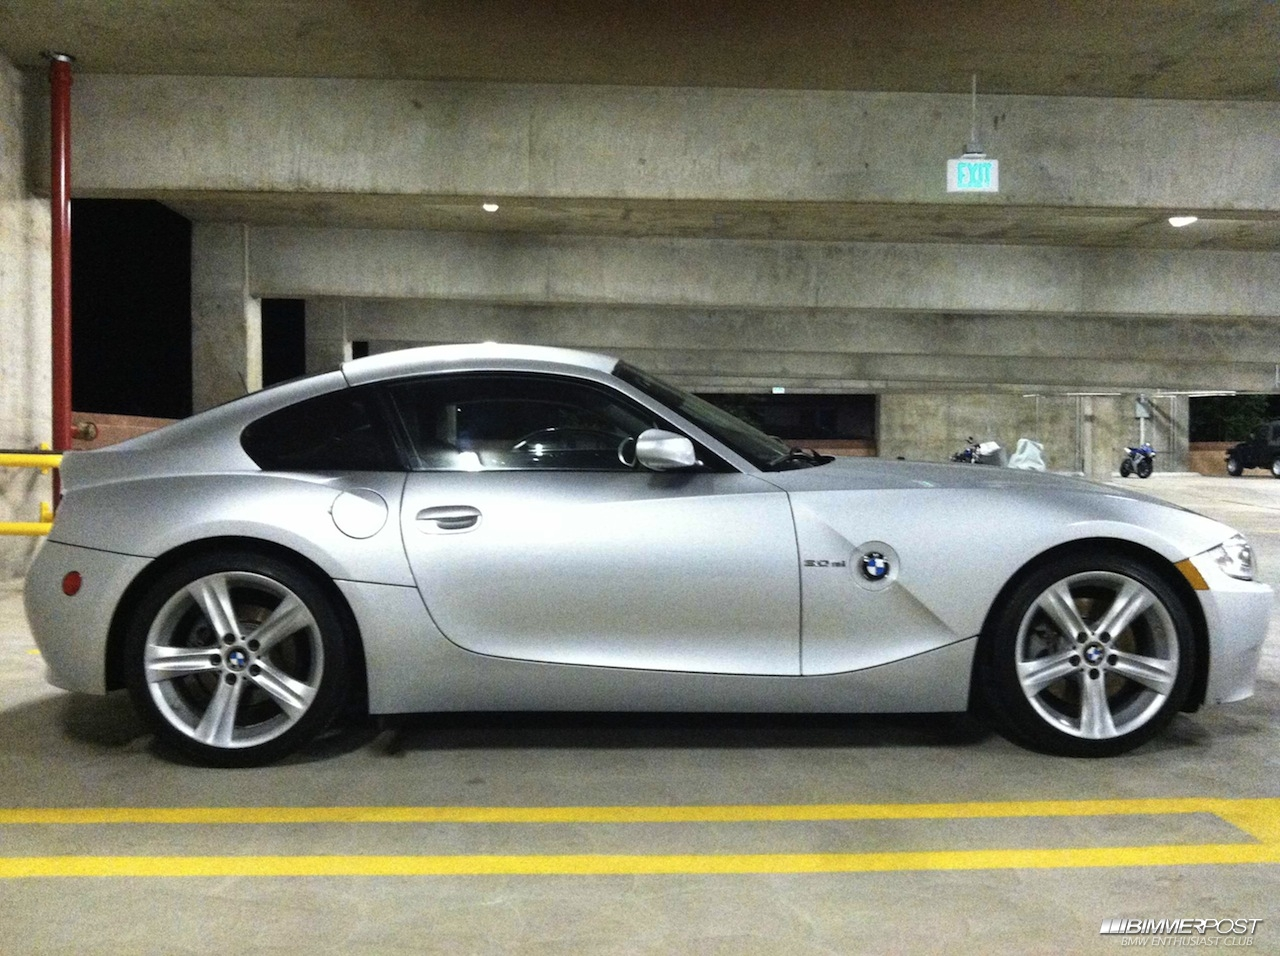 Valhalla1 S 2007 Bmw Z4 3 0si Coupe Bimmerpost Garage